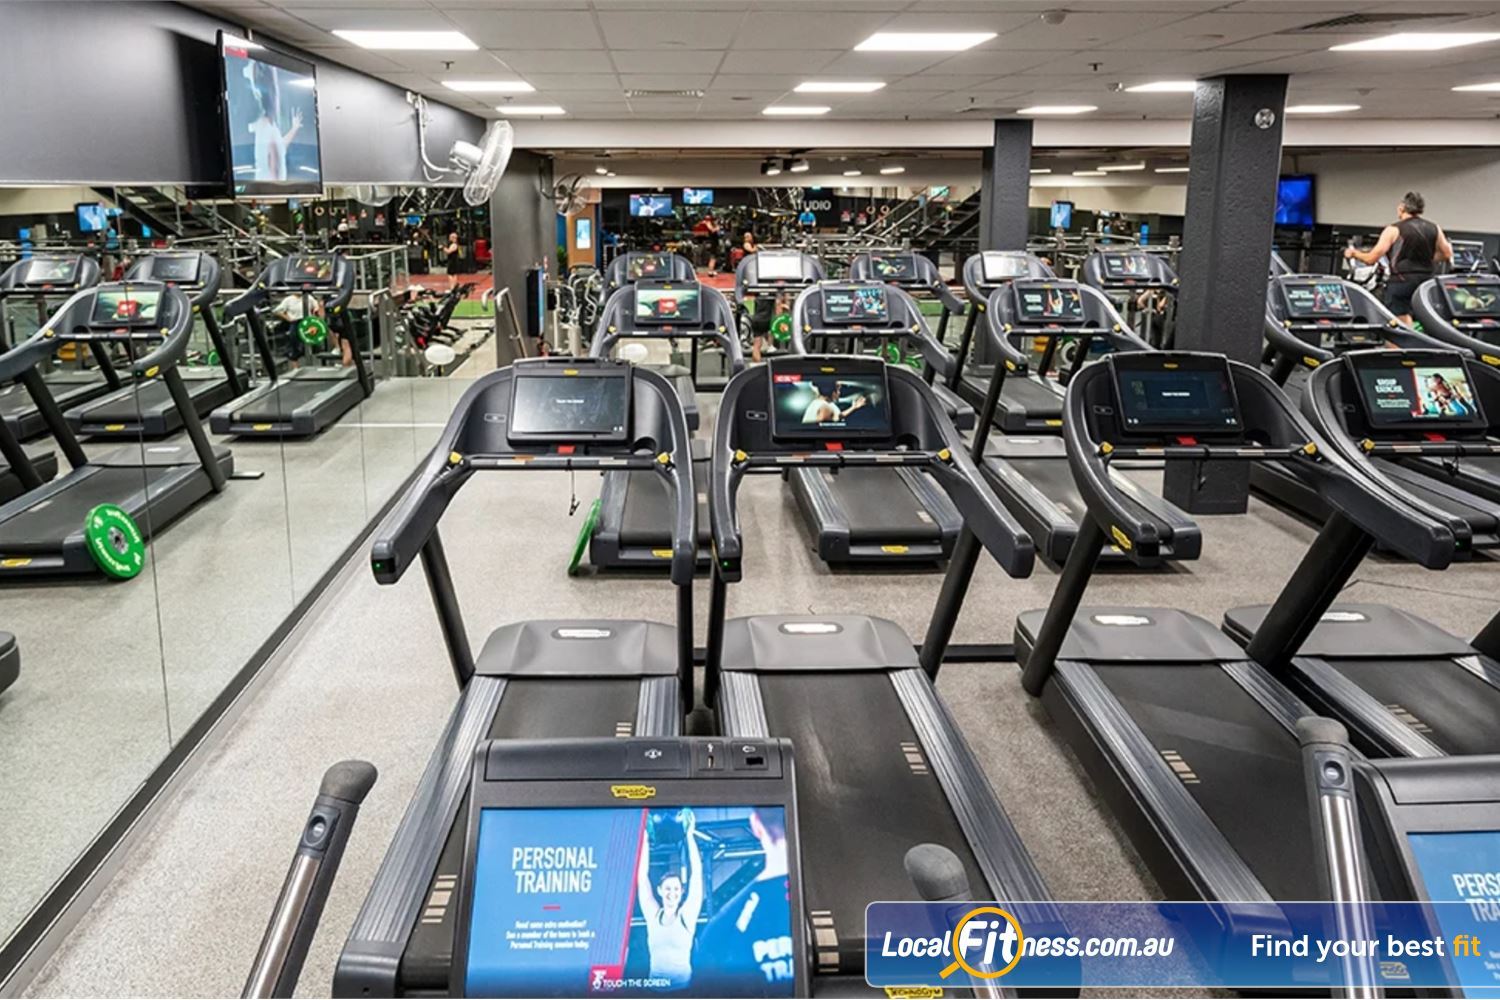 Fitness First Platinum George St. Near Strawberry Hills Fully equipped state of the art cardio area with treadmills, cross trainers, rowers and more.